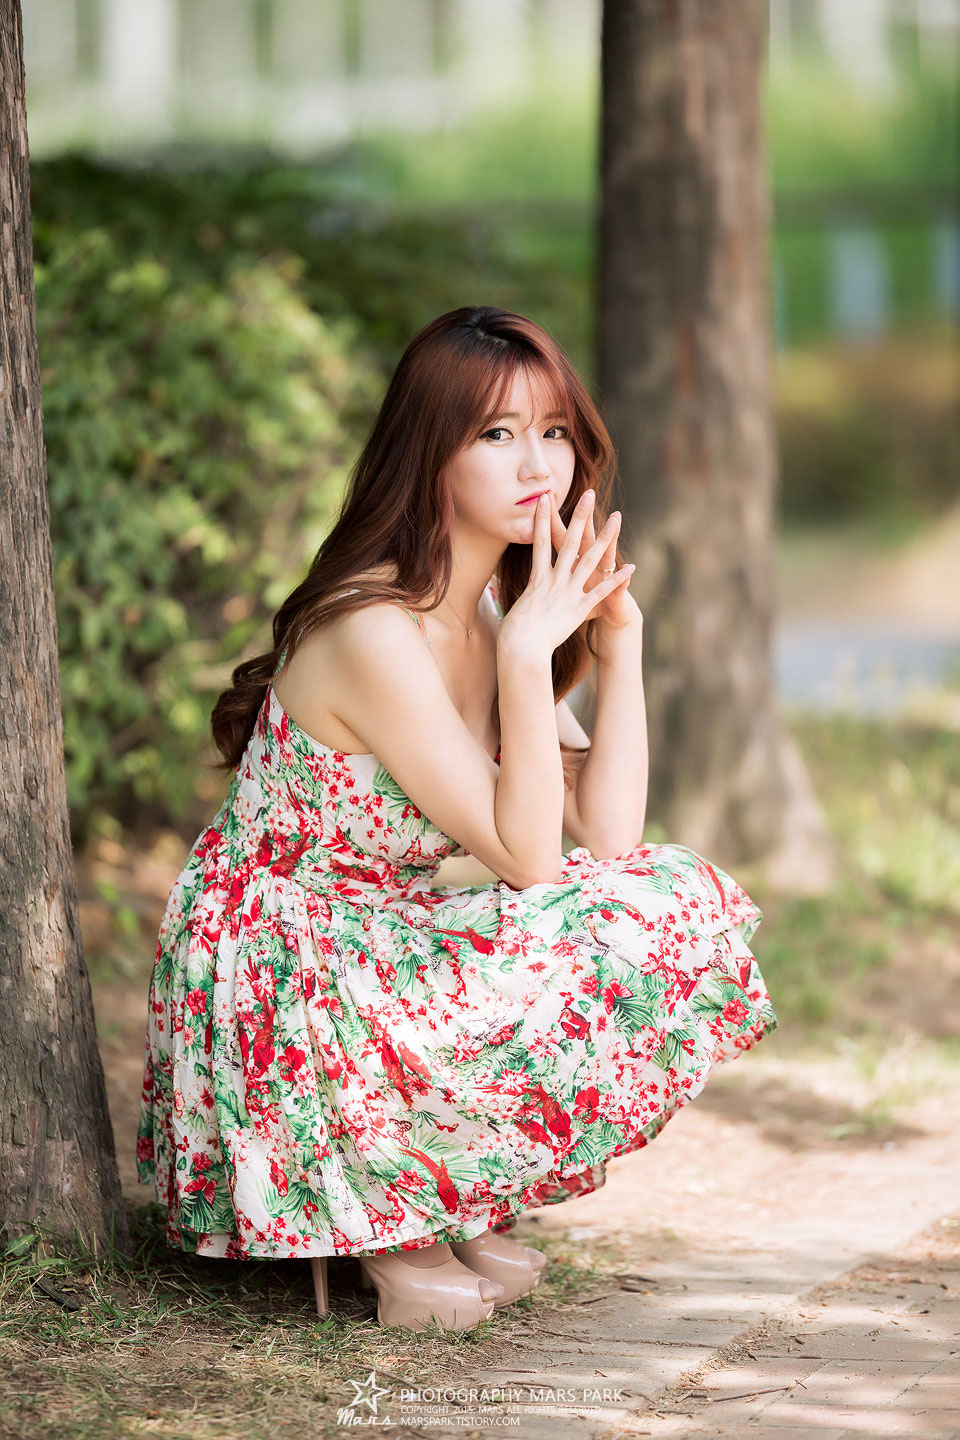 Korean model Im Sol Ah summer photoshoot